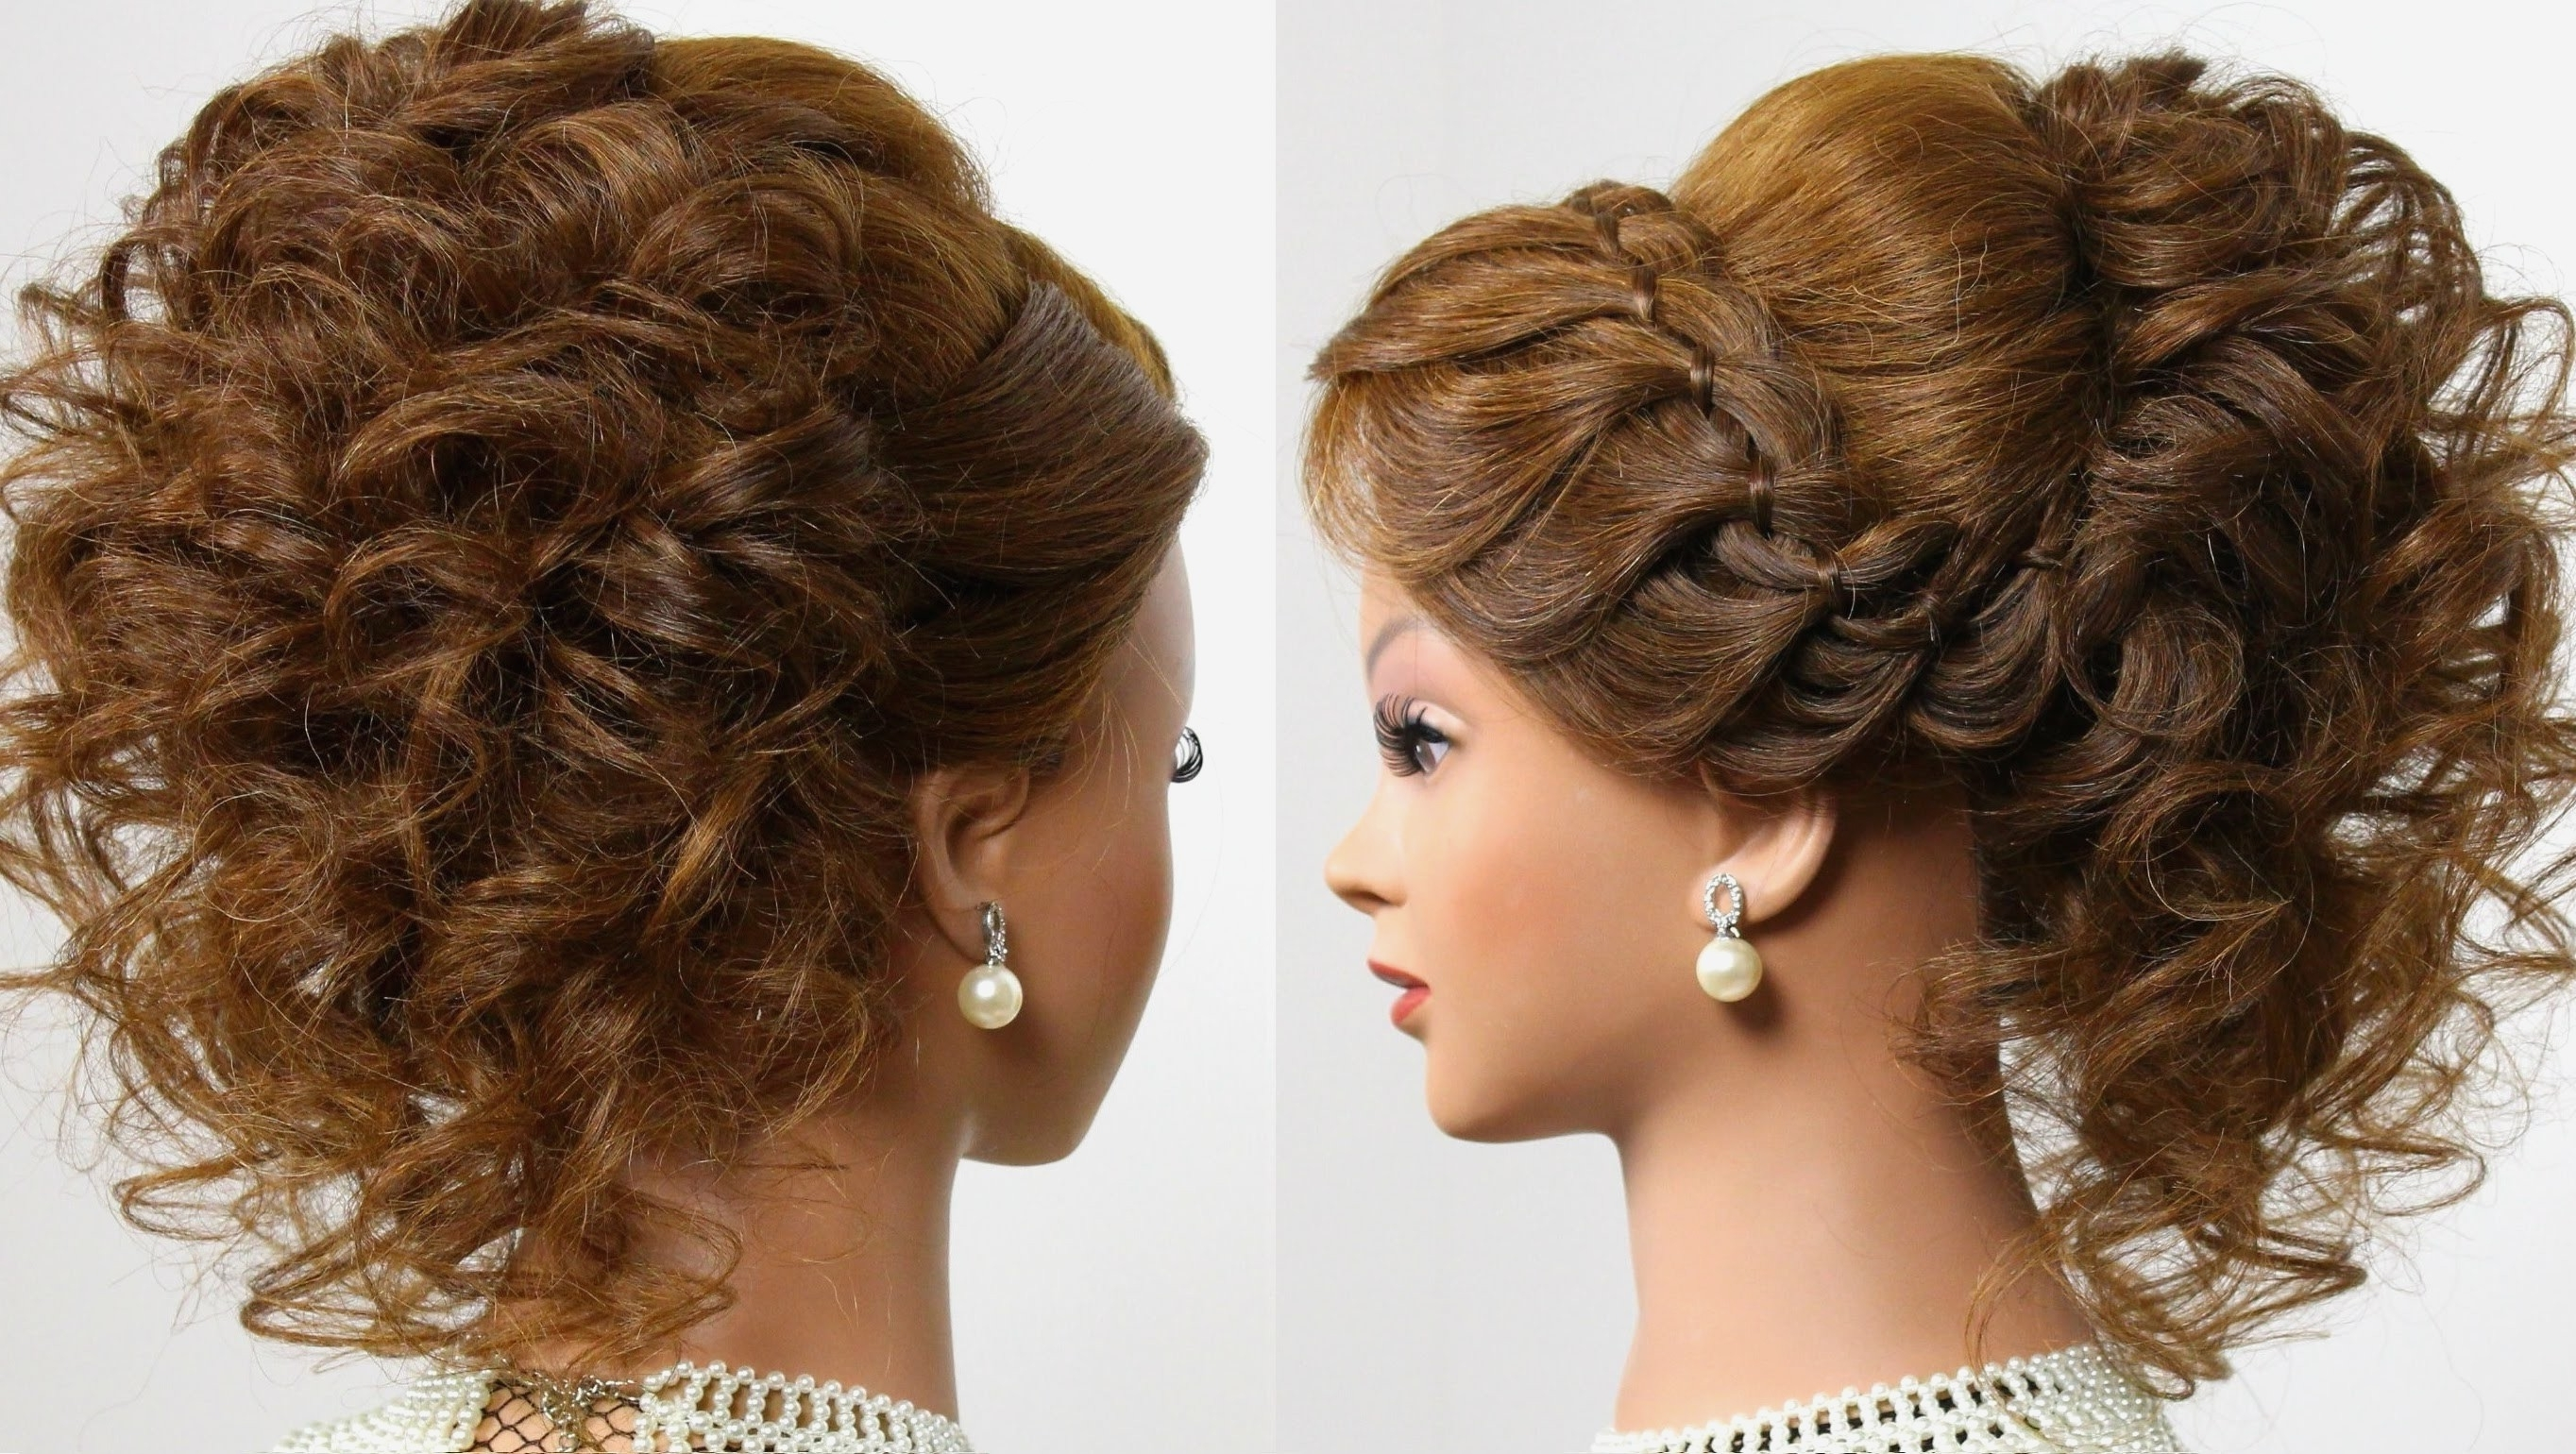 Latest Bridal Updo Hairstyles For Medium Length Hair With Wedding Hair Medium Length Updo Updos For Hairstyles Half Upn Bridal (View 15 of 15)